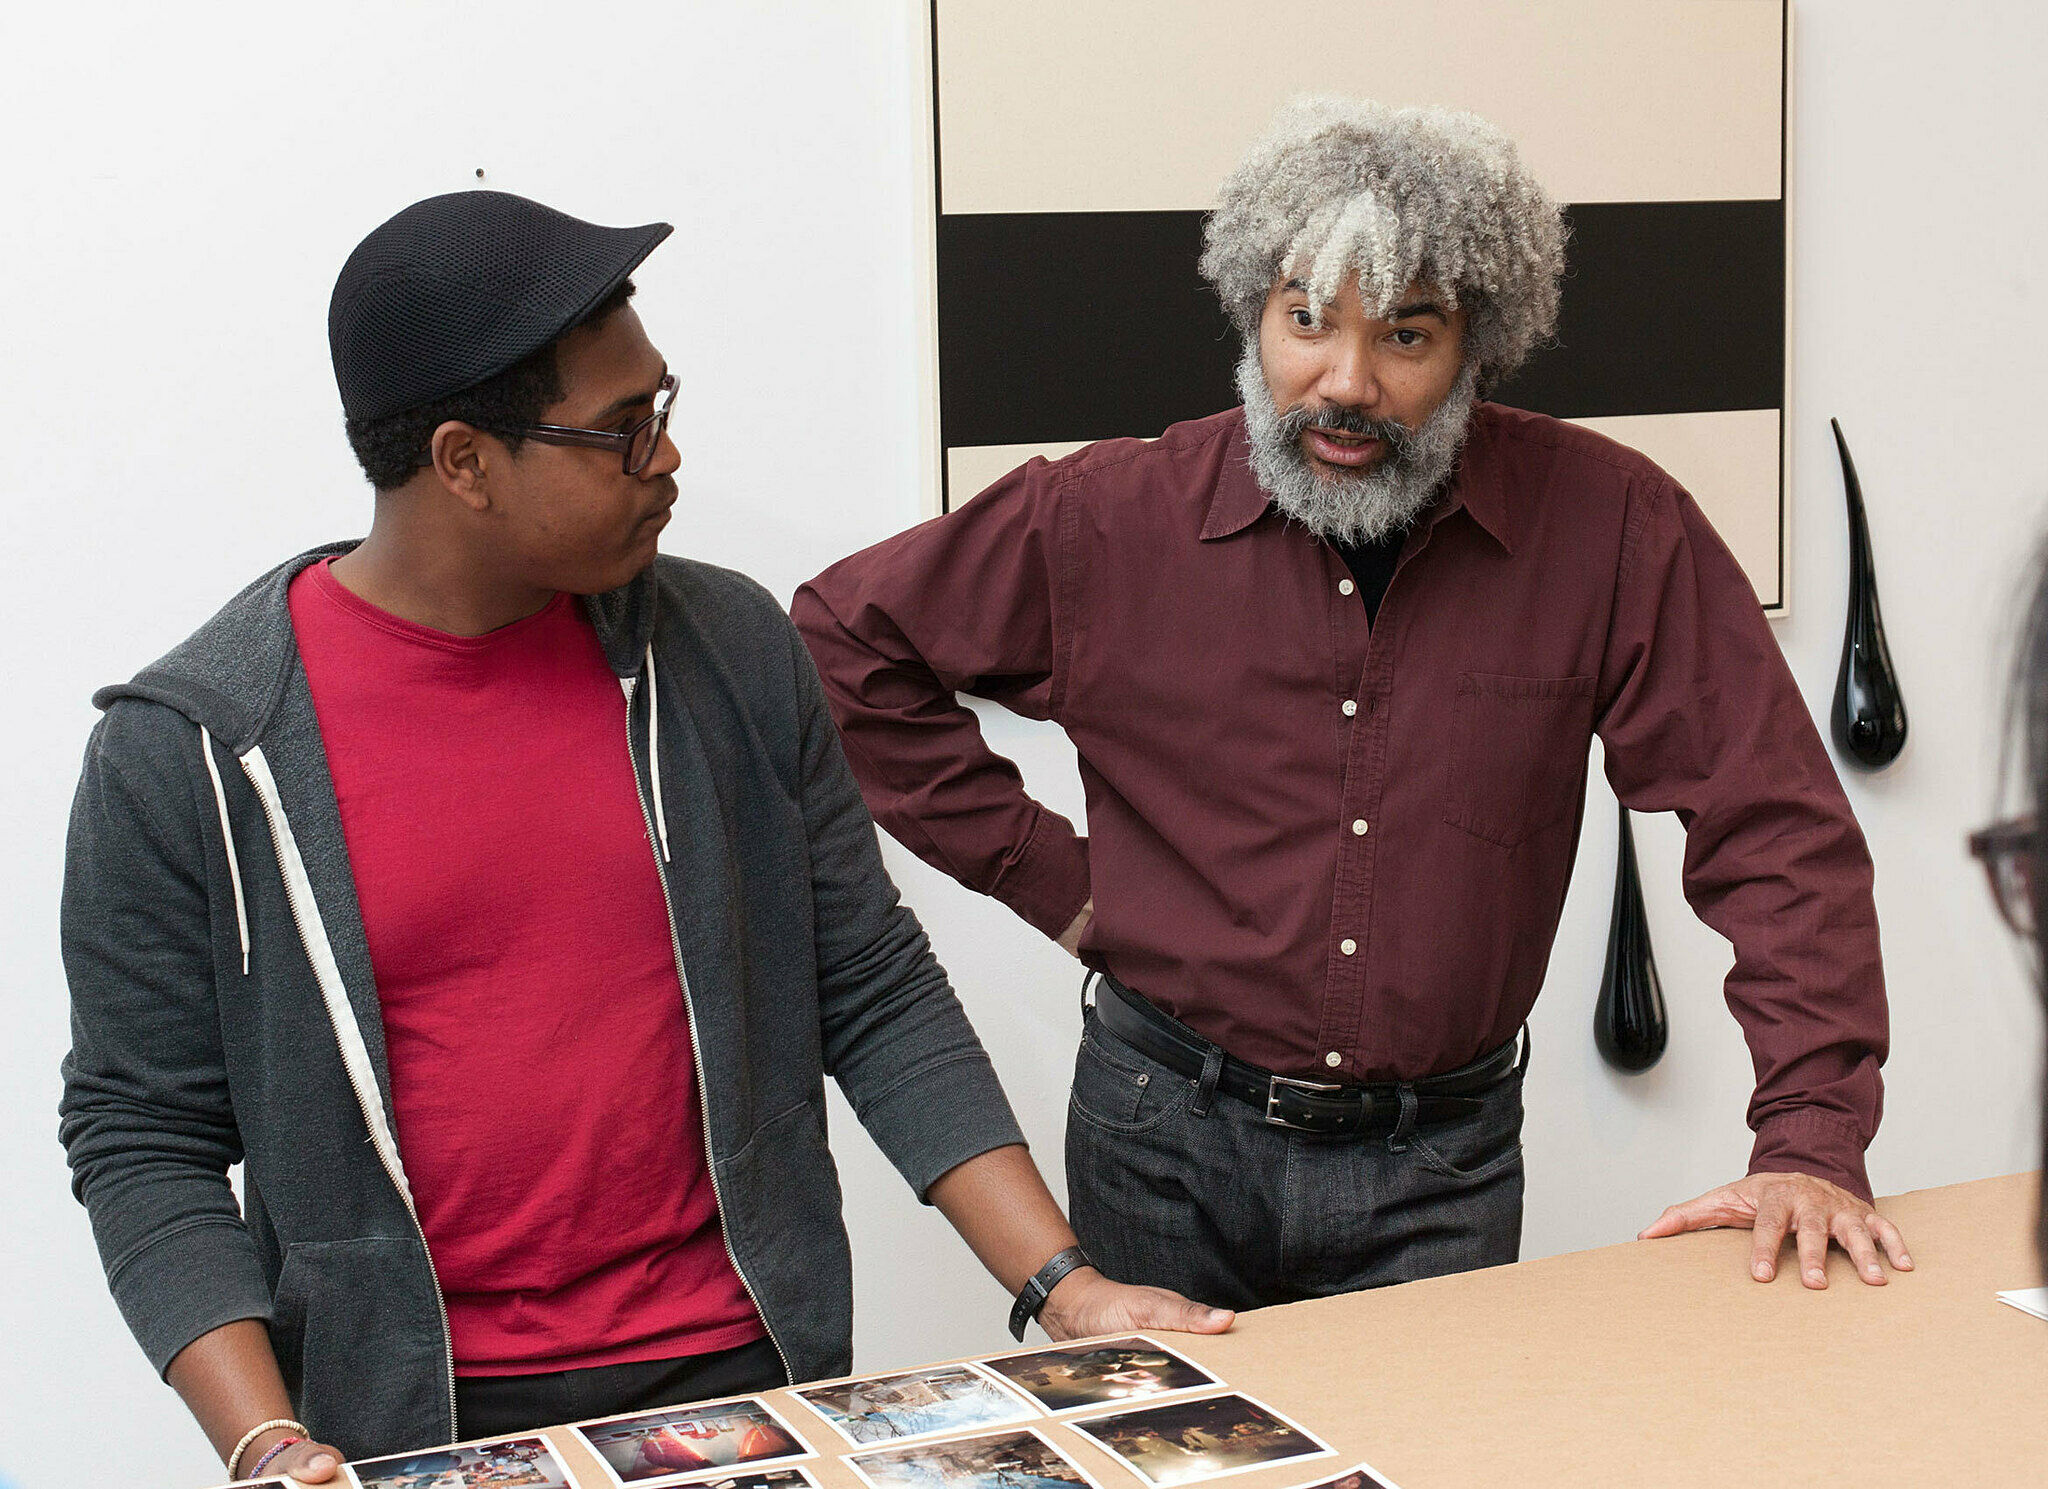 Artist discusses with a student.